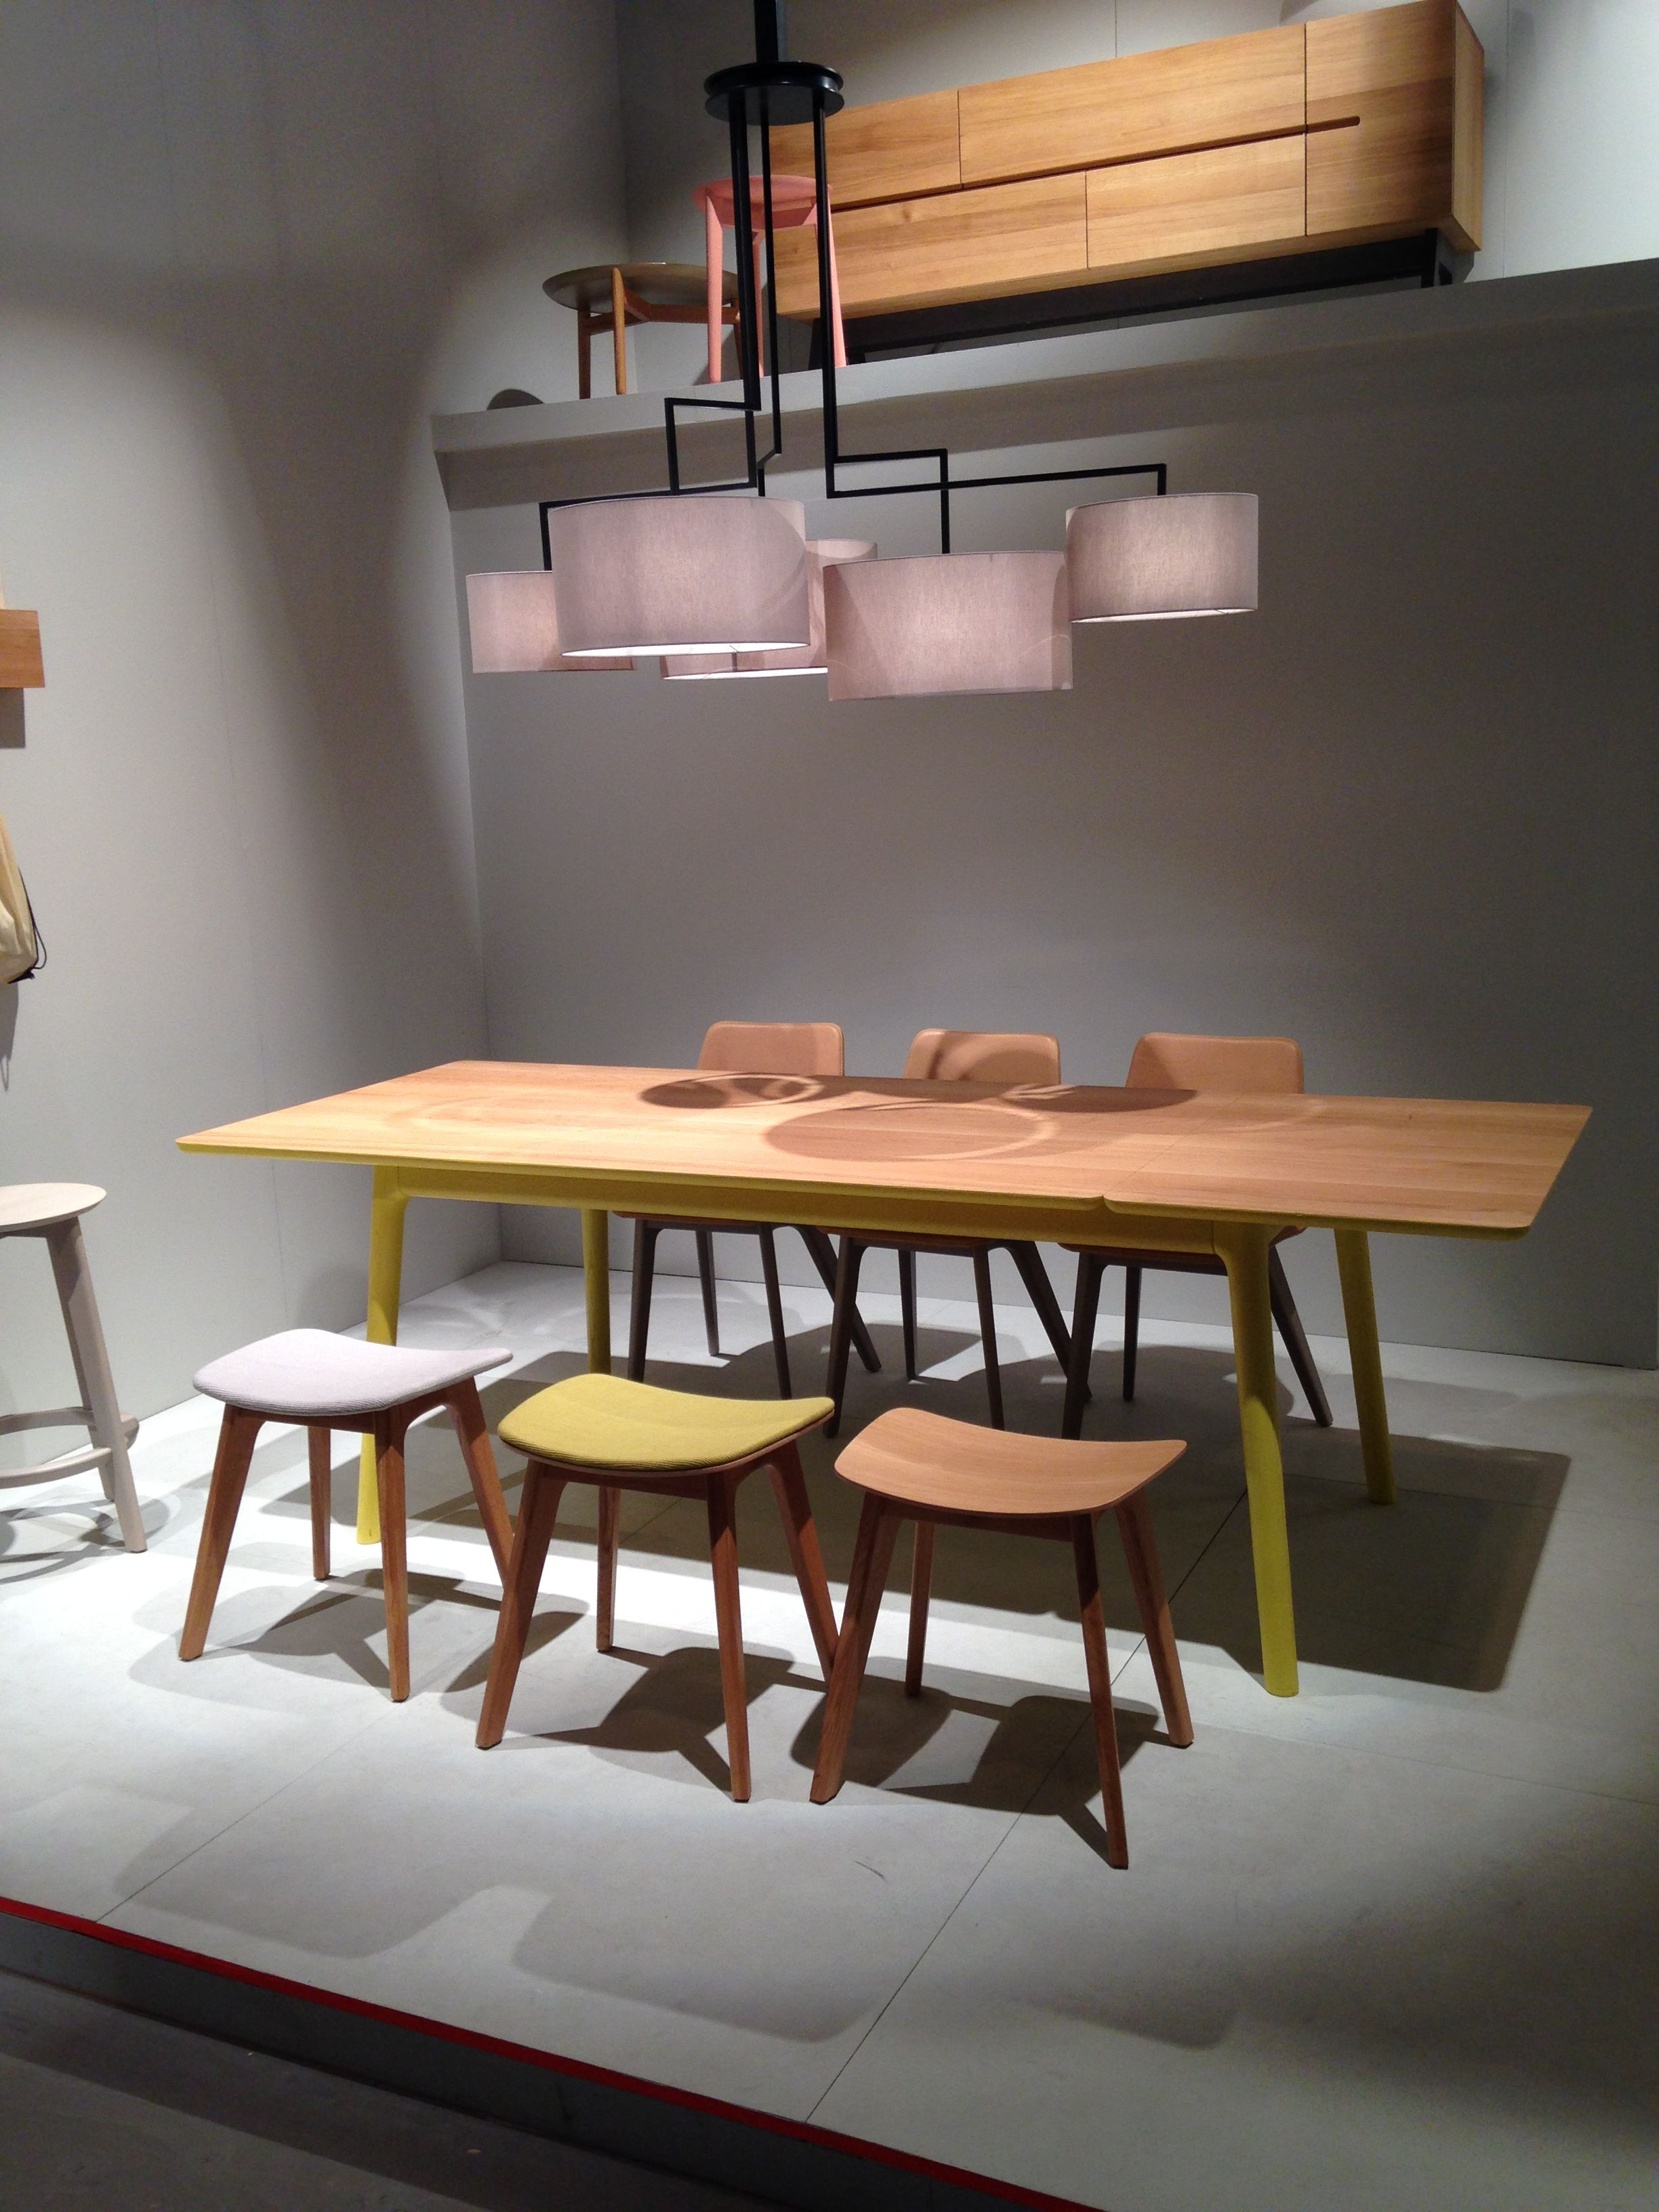 The New MORPH STOOL By Formstelle And New E8 LONGUE Table By Mathias Hahn  Under The